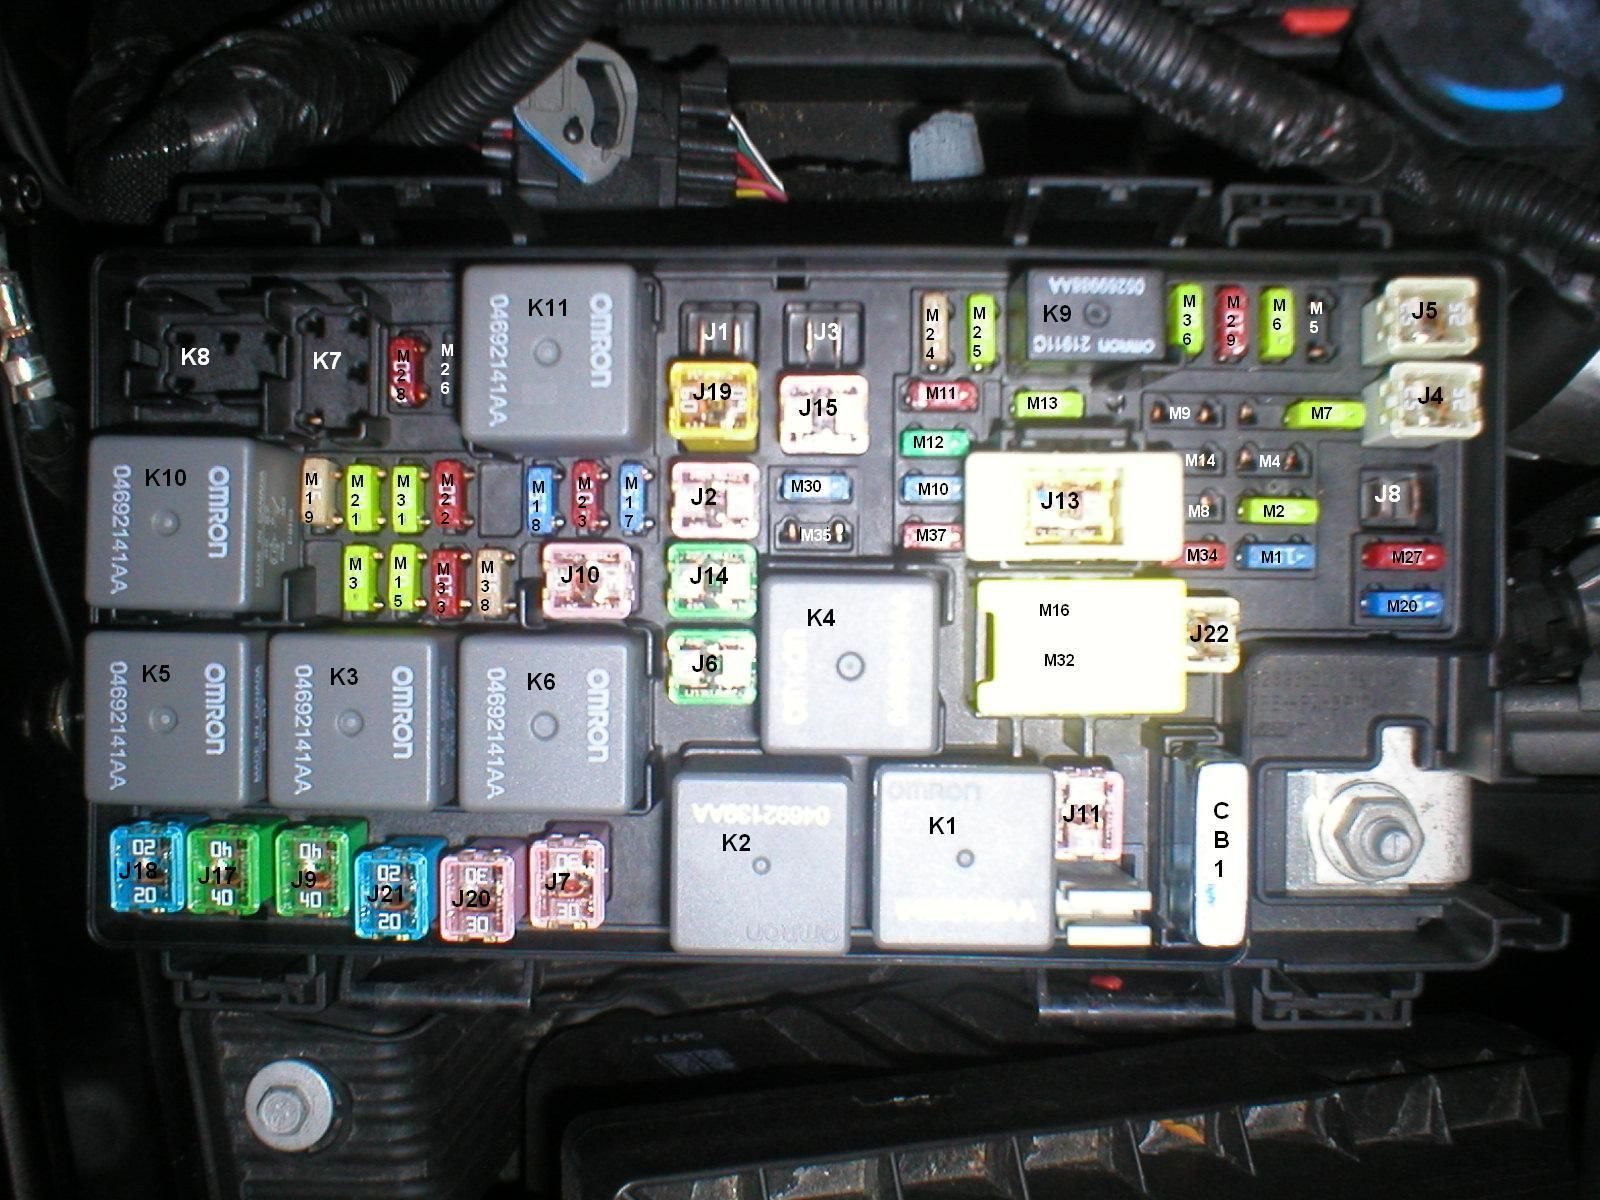 Jeep JK Fuse Box Map Layout Diagram - JeepForum.com